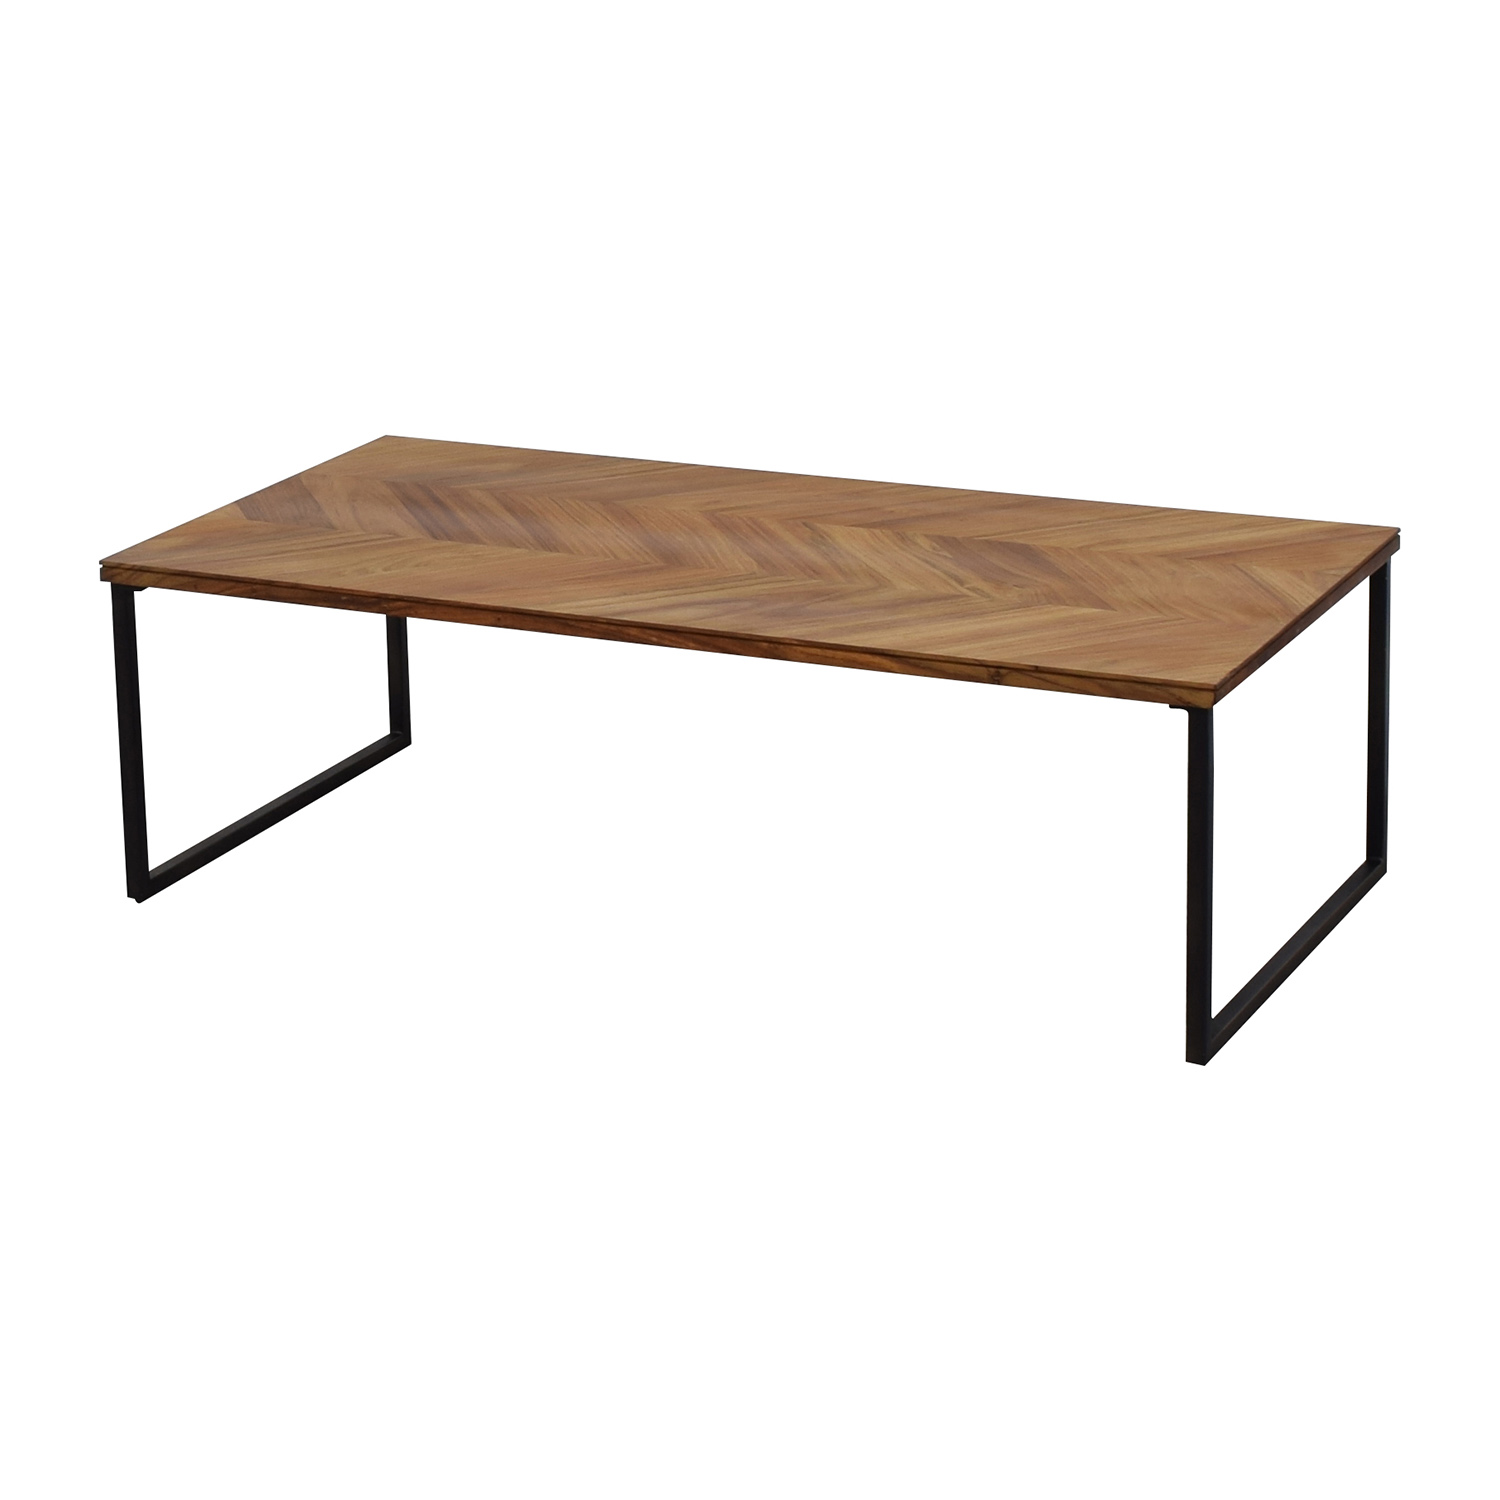 "Cb2 Mid Century Coffee Table: CB2 CB2 Chevron 48"" Coffee Table / Tables"